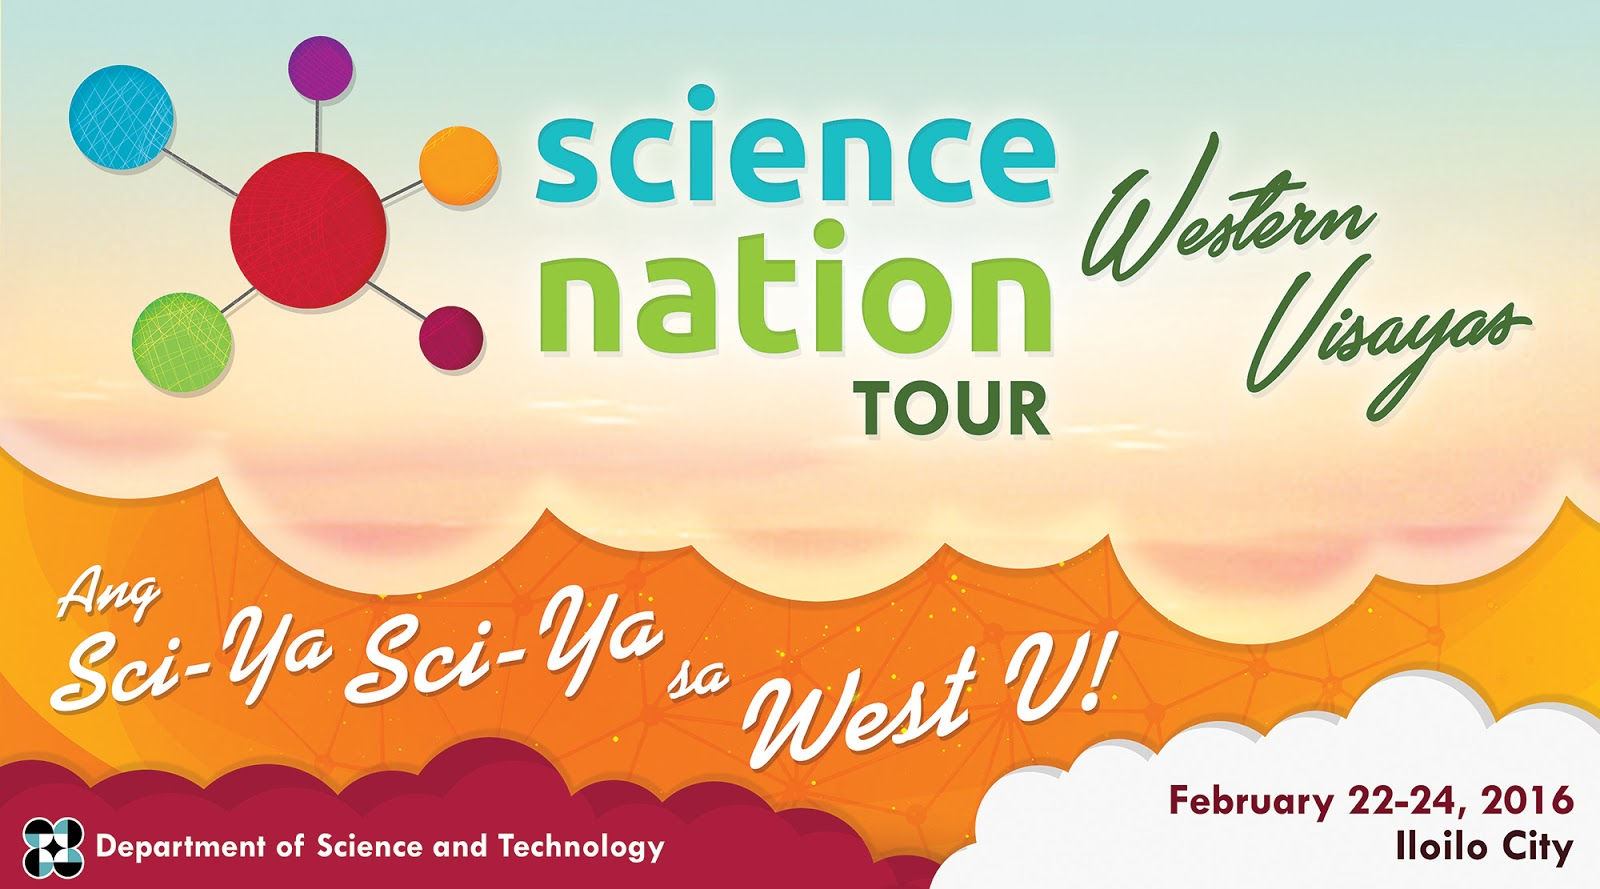 Science Nation Tour Western Visayas